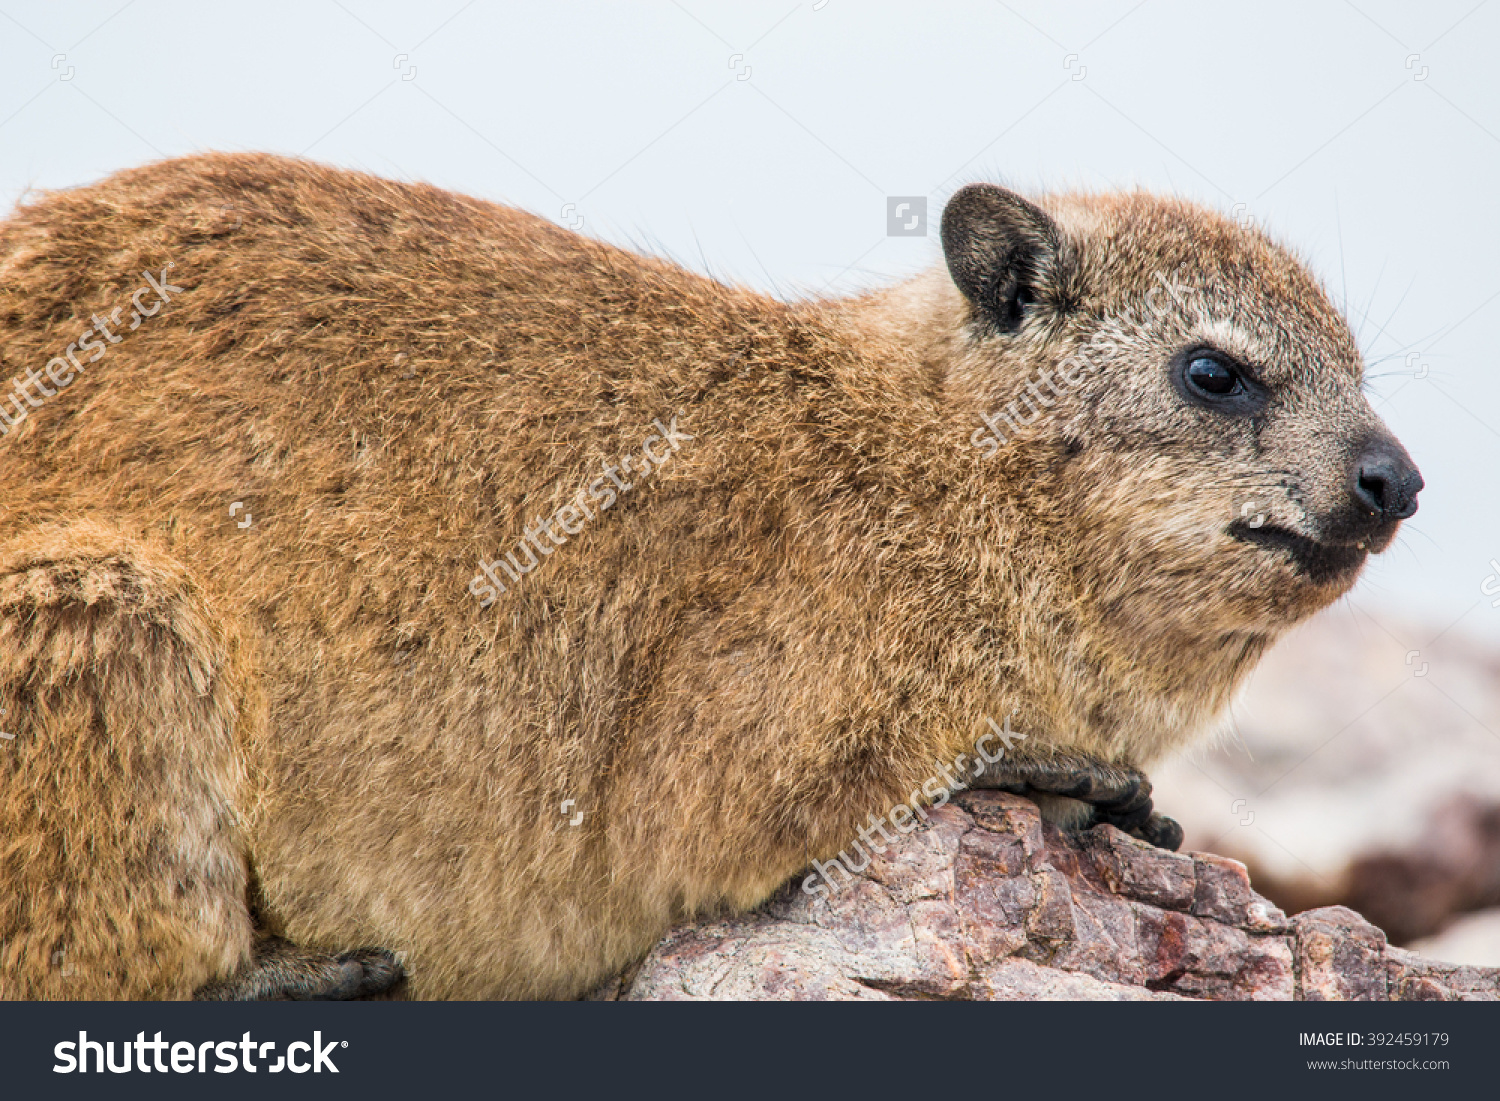 Rock Hyrax Is A Mammal Of The Family Procaviidae Stock Photo.